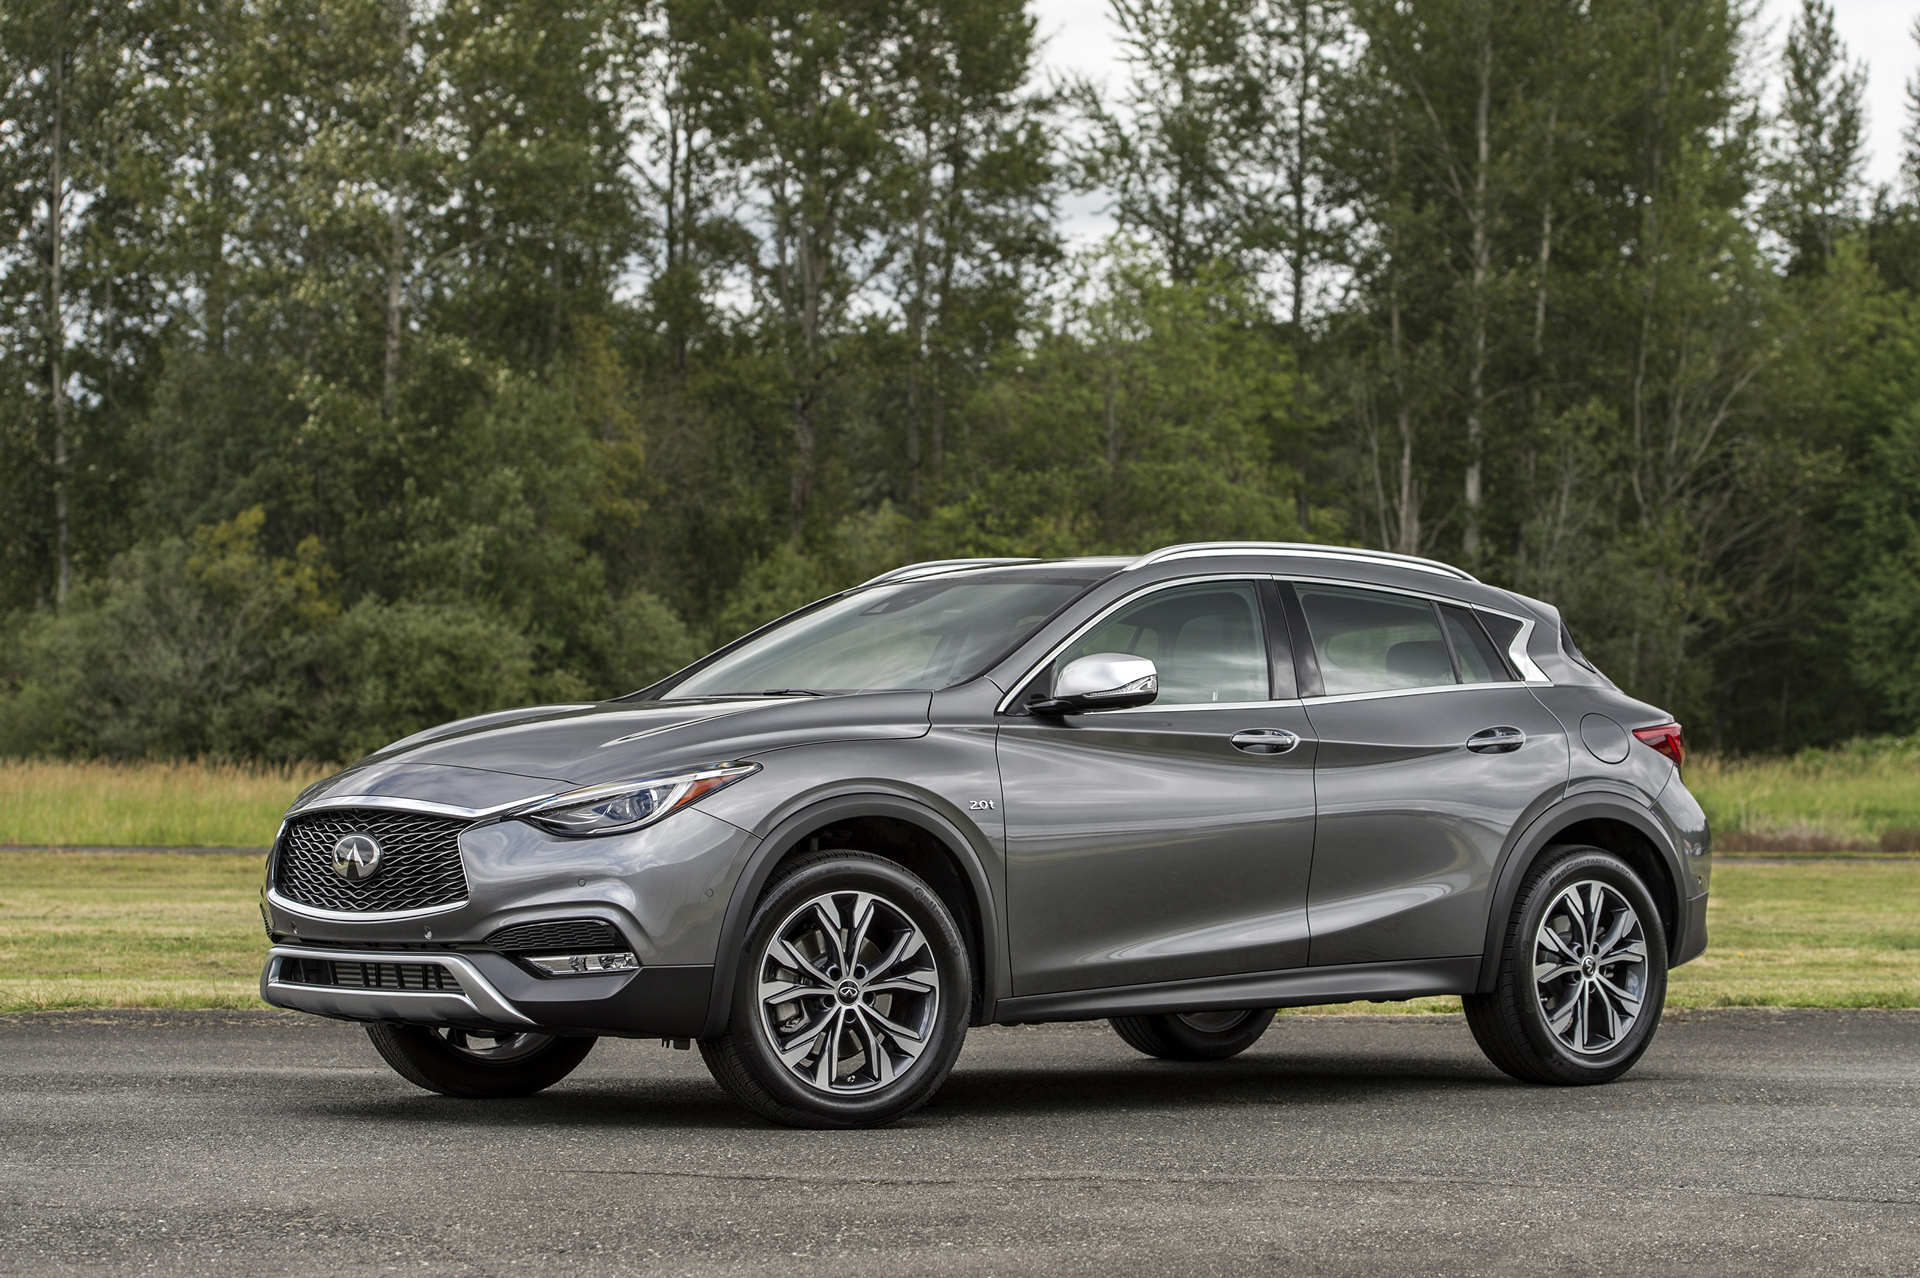 2017 Infiniti QX30 © Nissan Motor Co., Ltd.